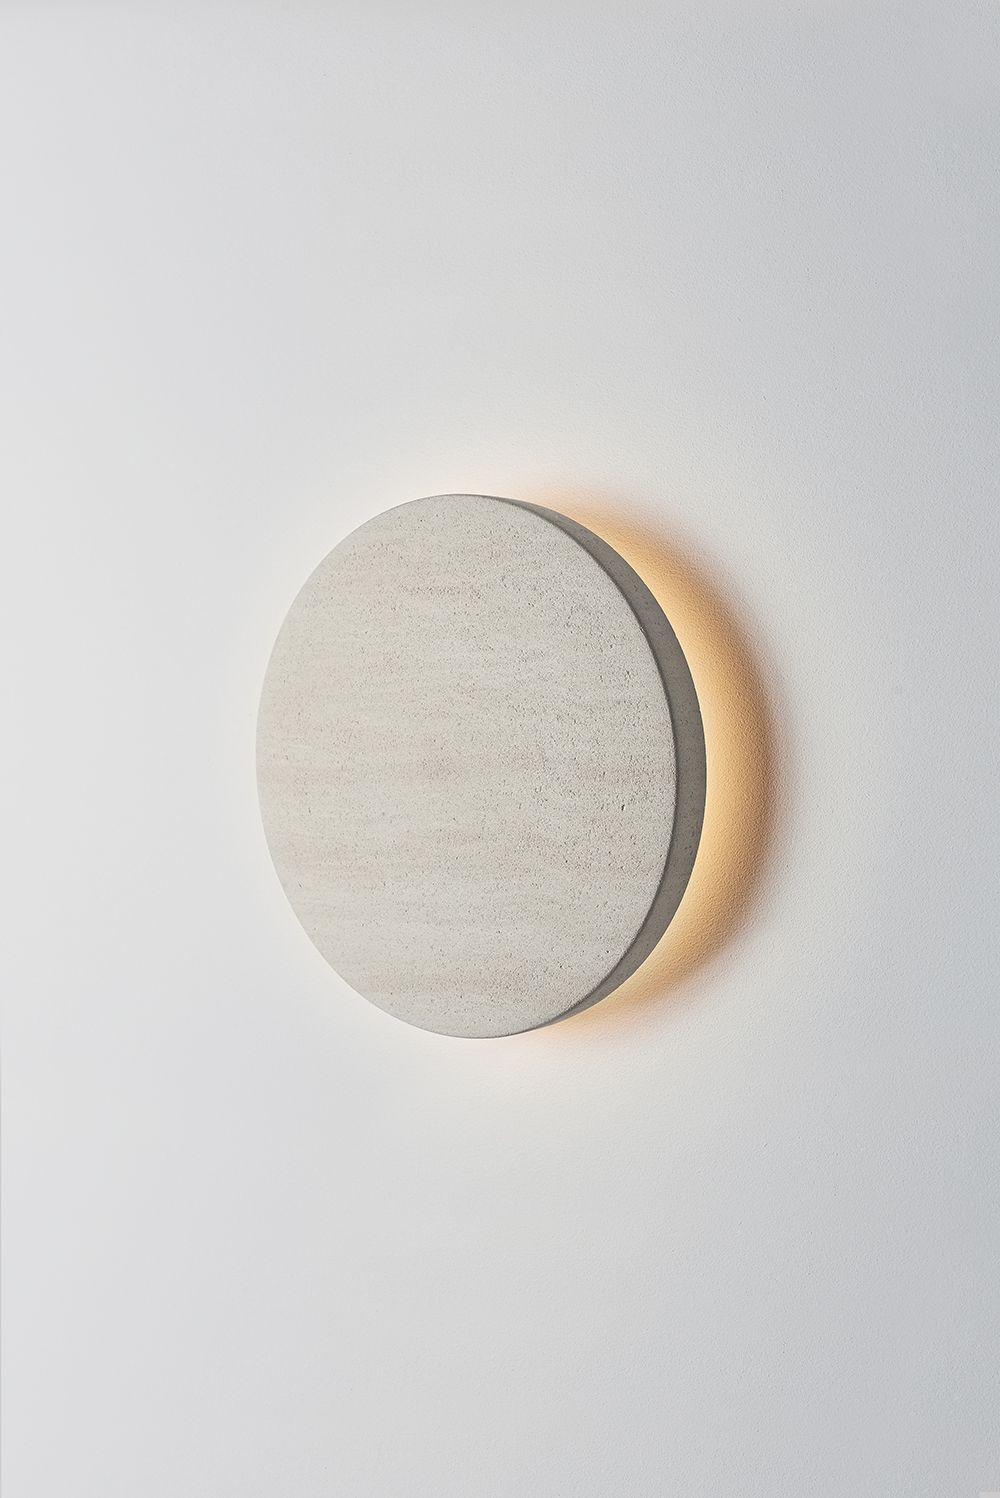 Inkster Maken S Eclipse Wall Light Epitomises What Combine Measuring 275mm In Diameter And 150mm Deep A Contemporary Wall Lights Wall Lights Interior Lighting